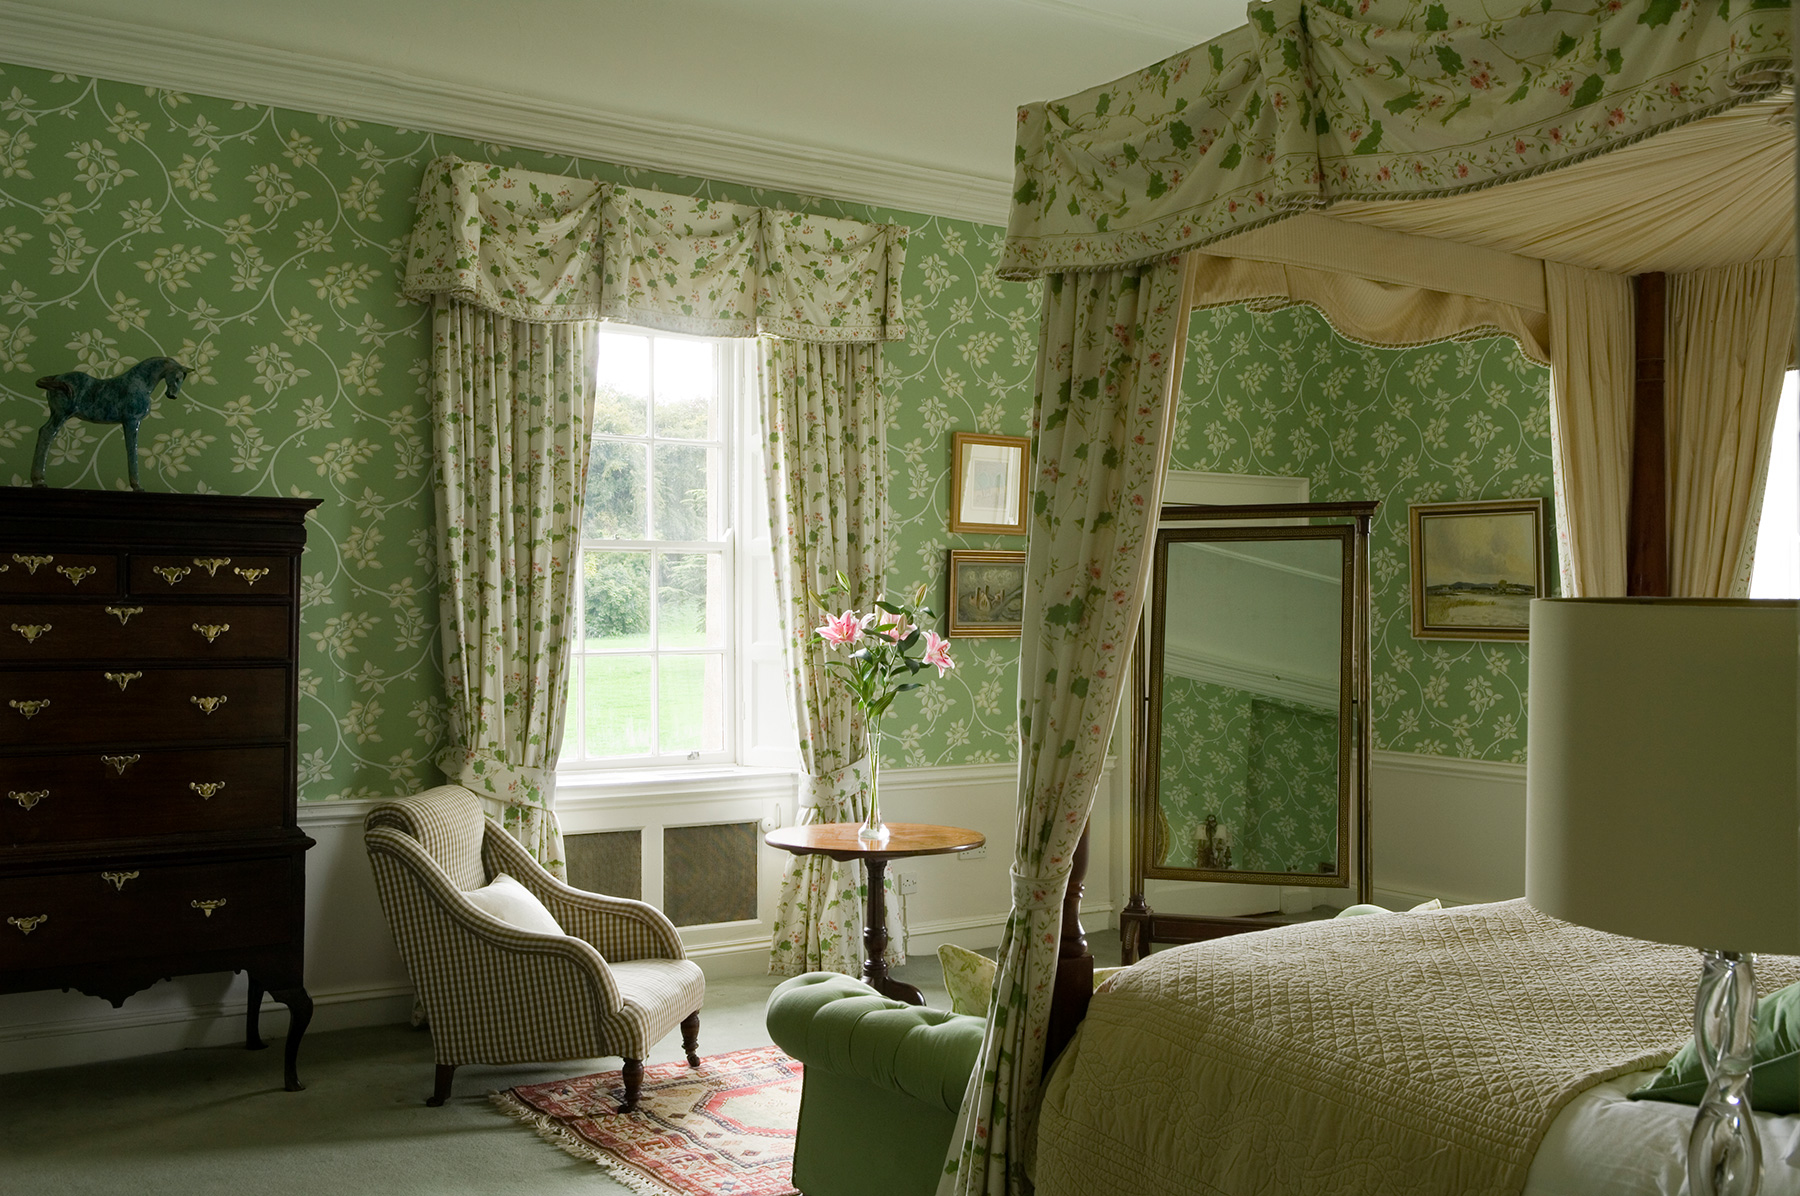 Black White Modern Wallpaper Irish Country Green Bedroom Interiors By Color